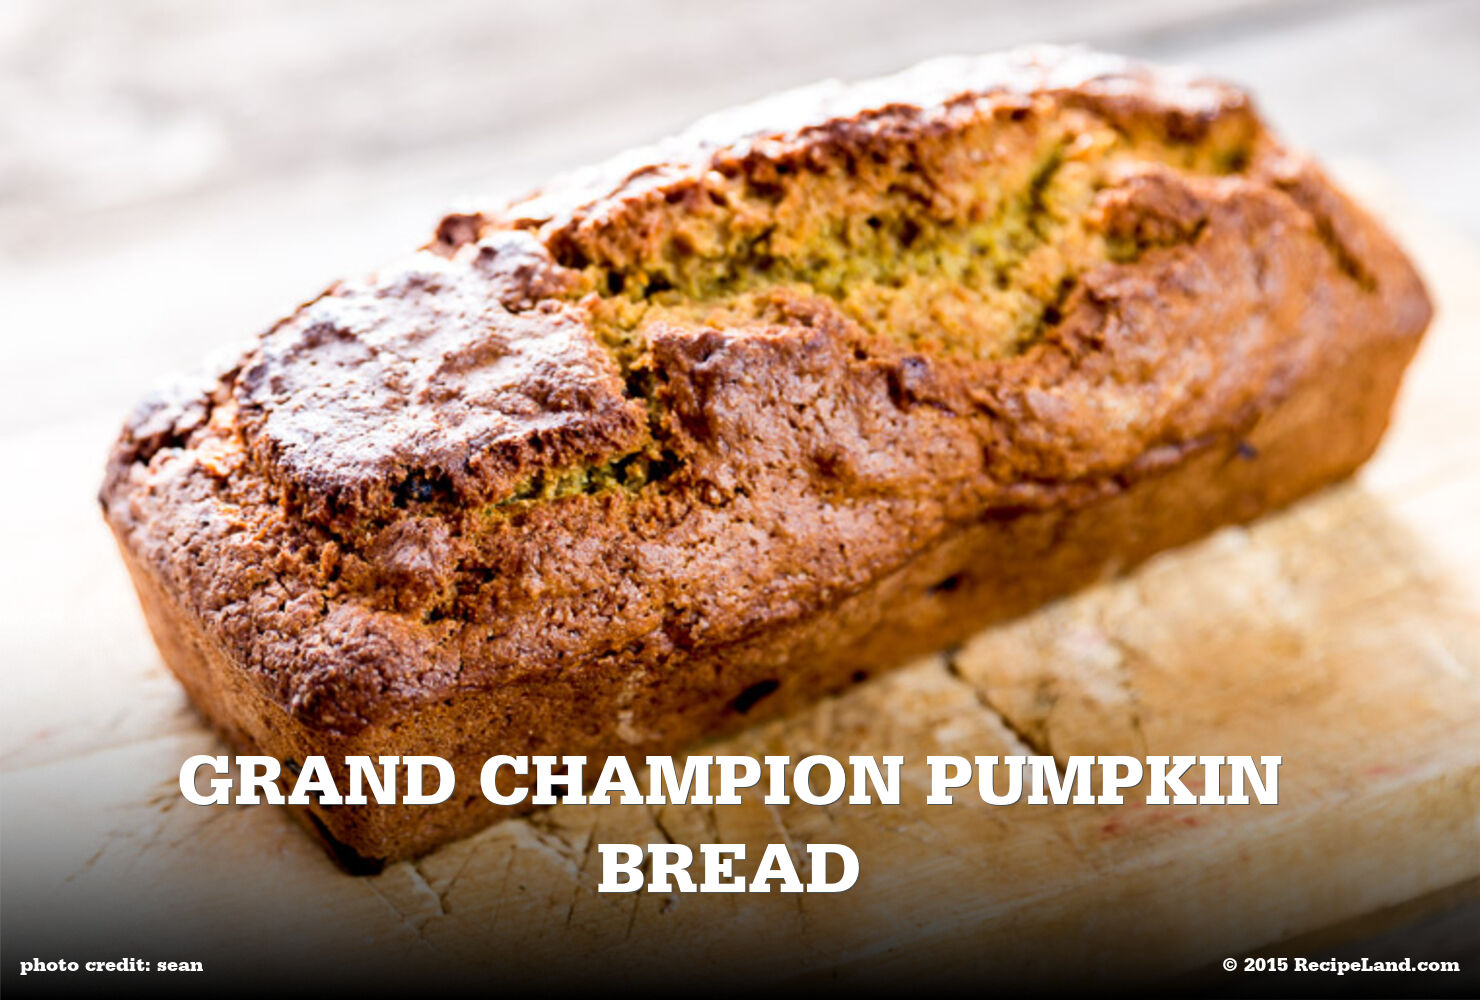 Grand Champion Pumpkin Bread